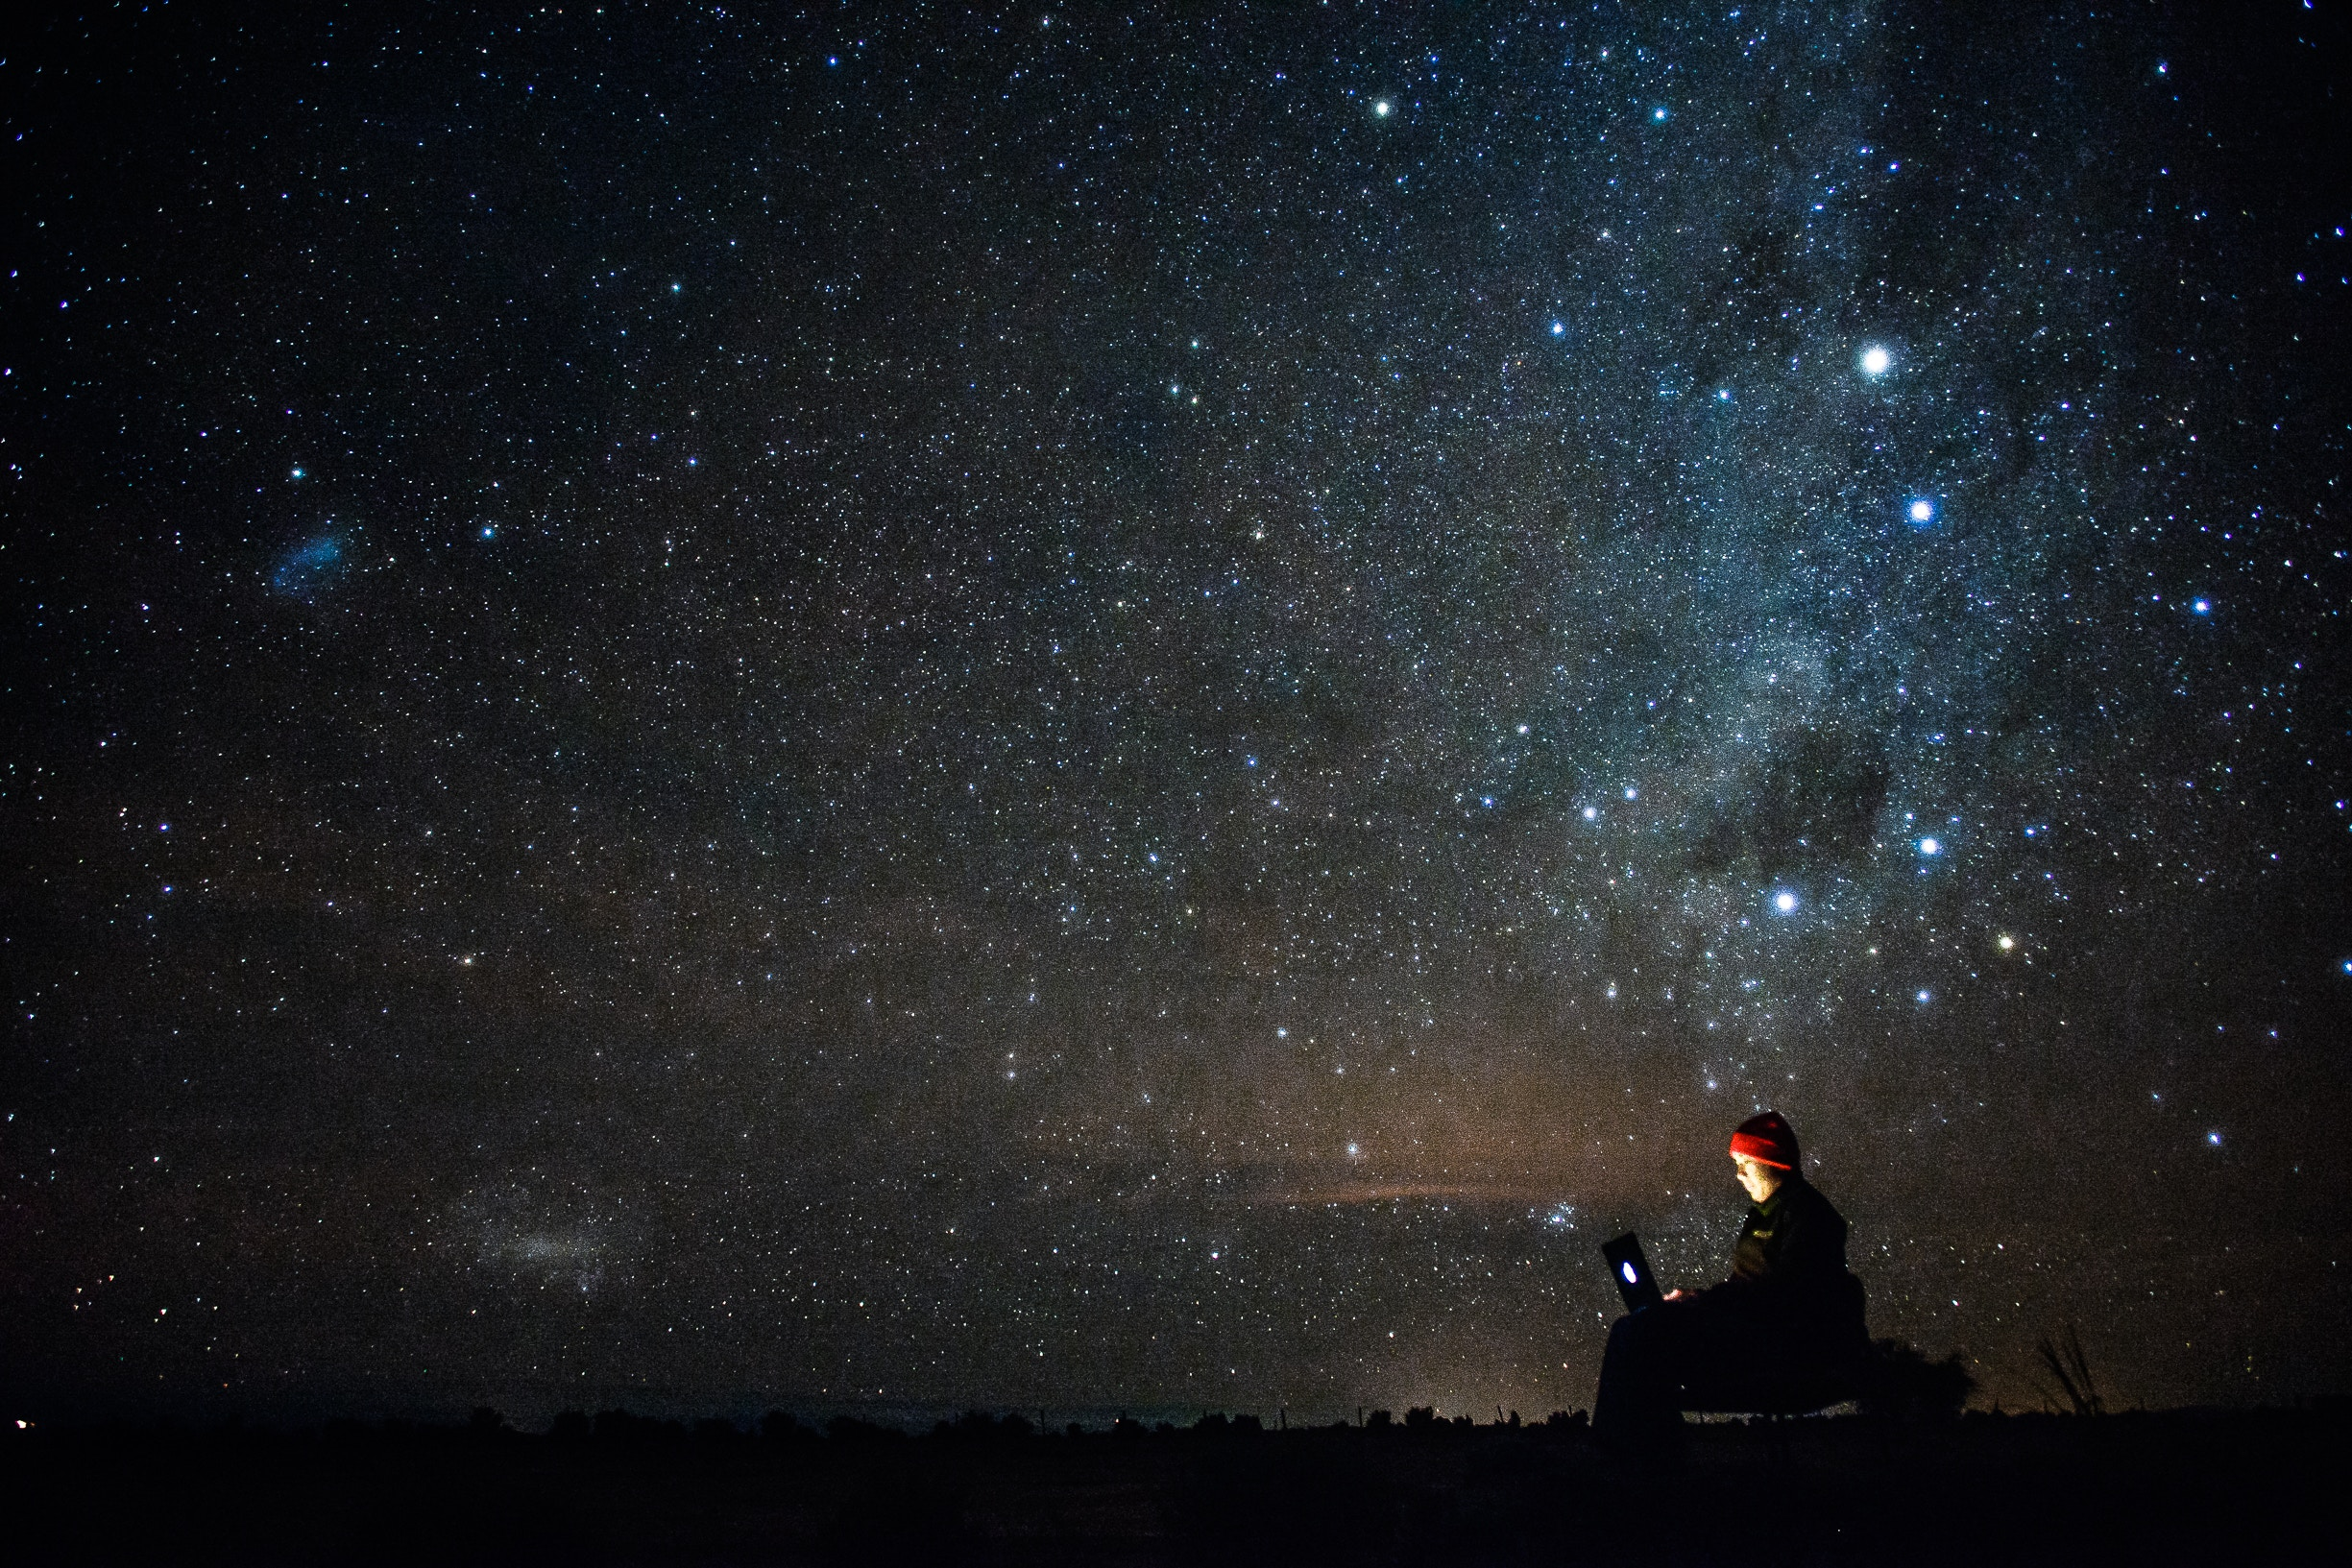 Remote Year Inspiring Places Photography Competition with Unsplash | Johnson Wang Starry Night